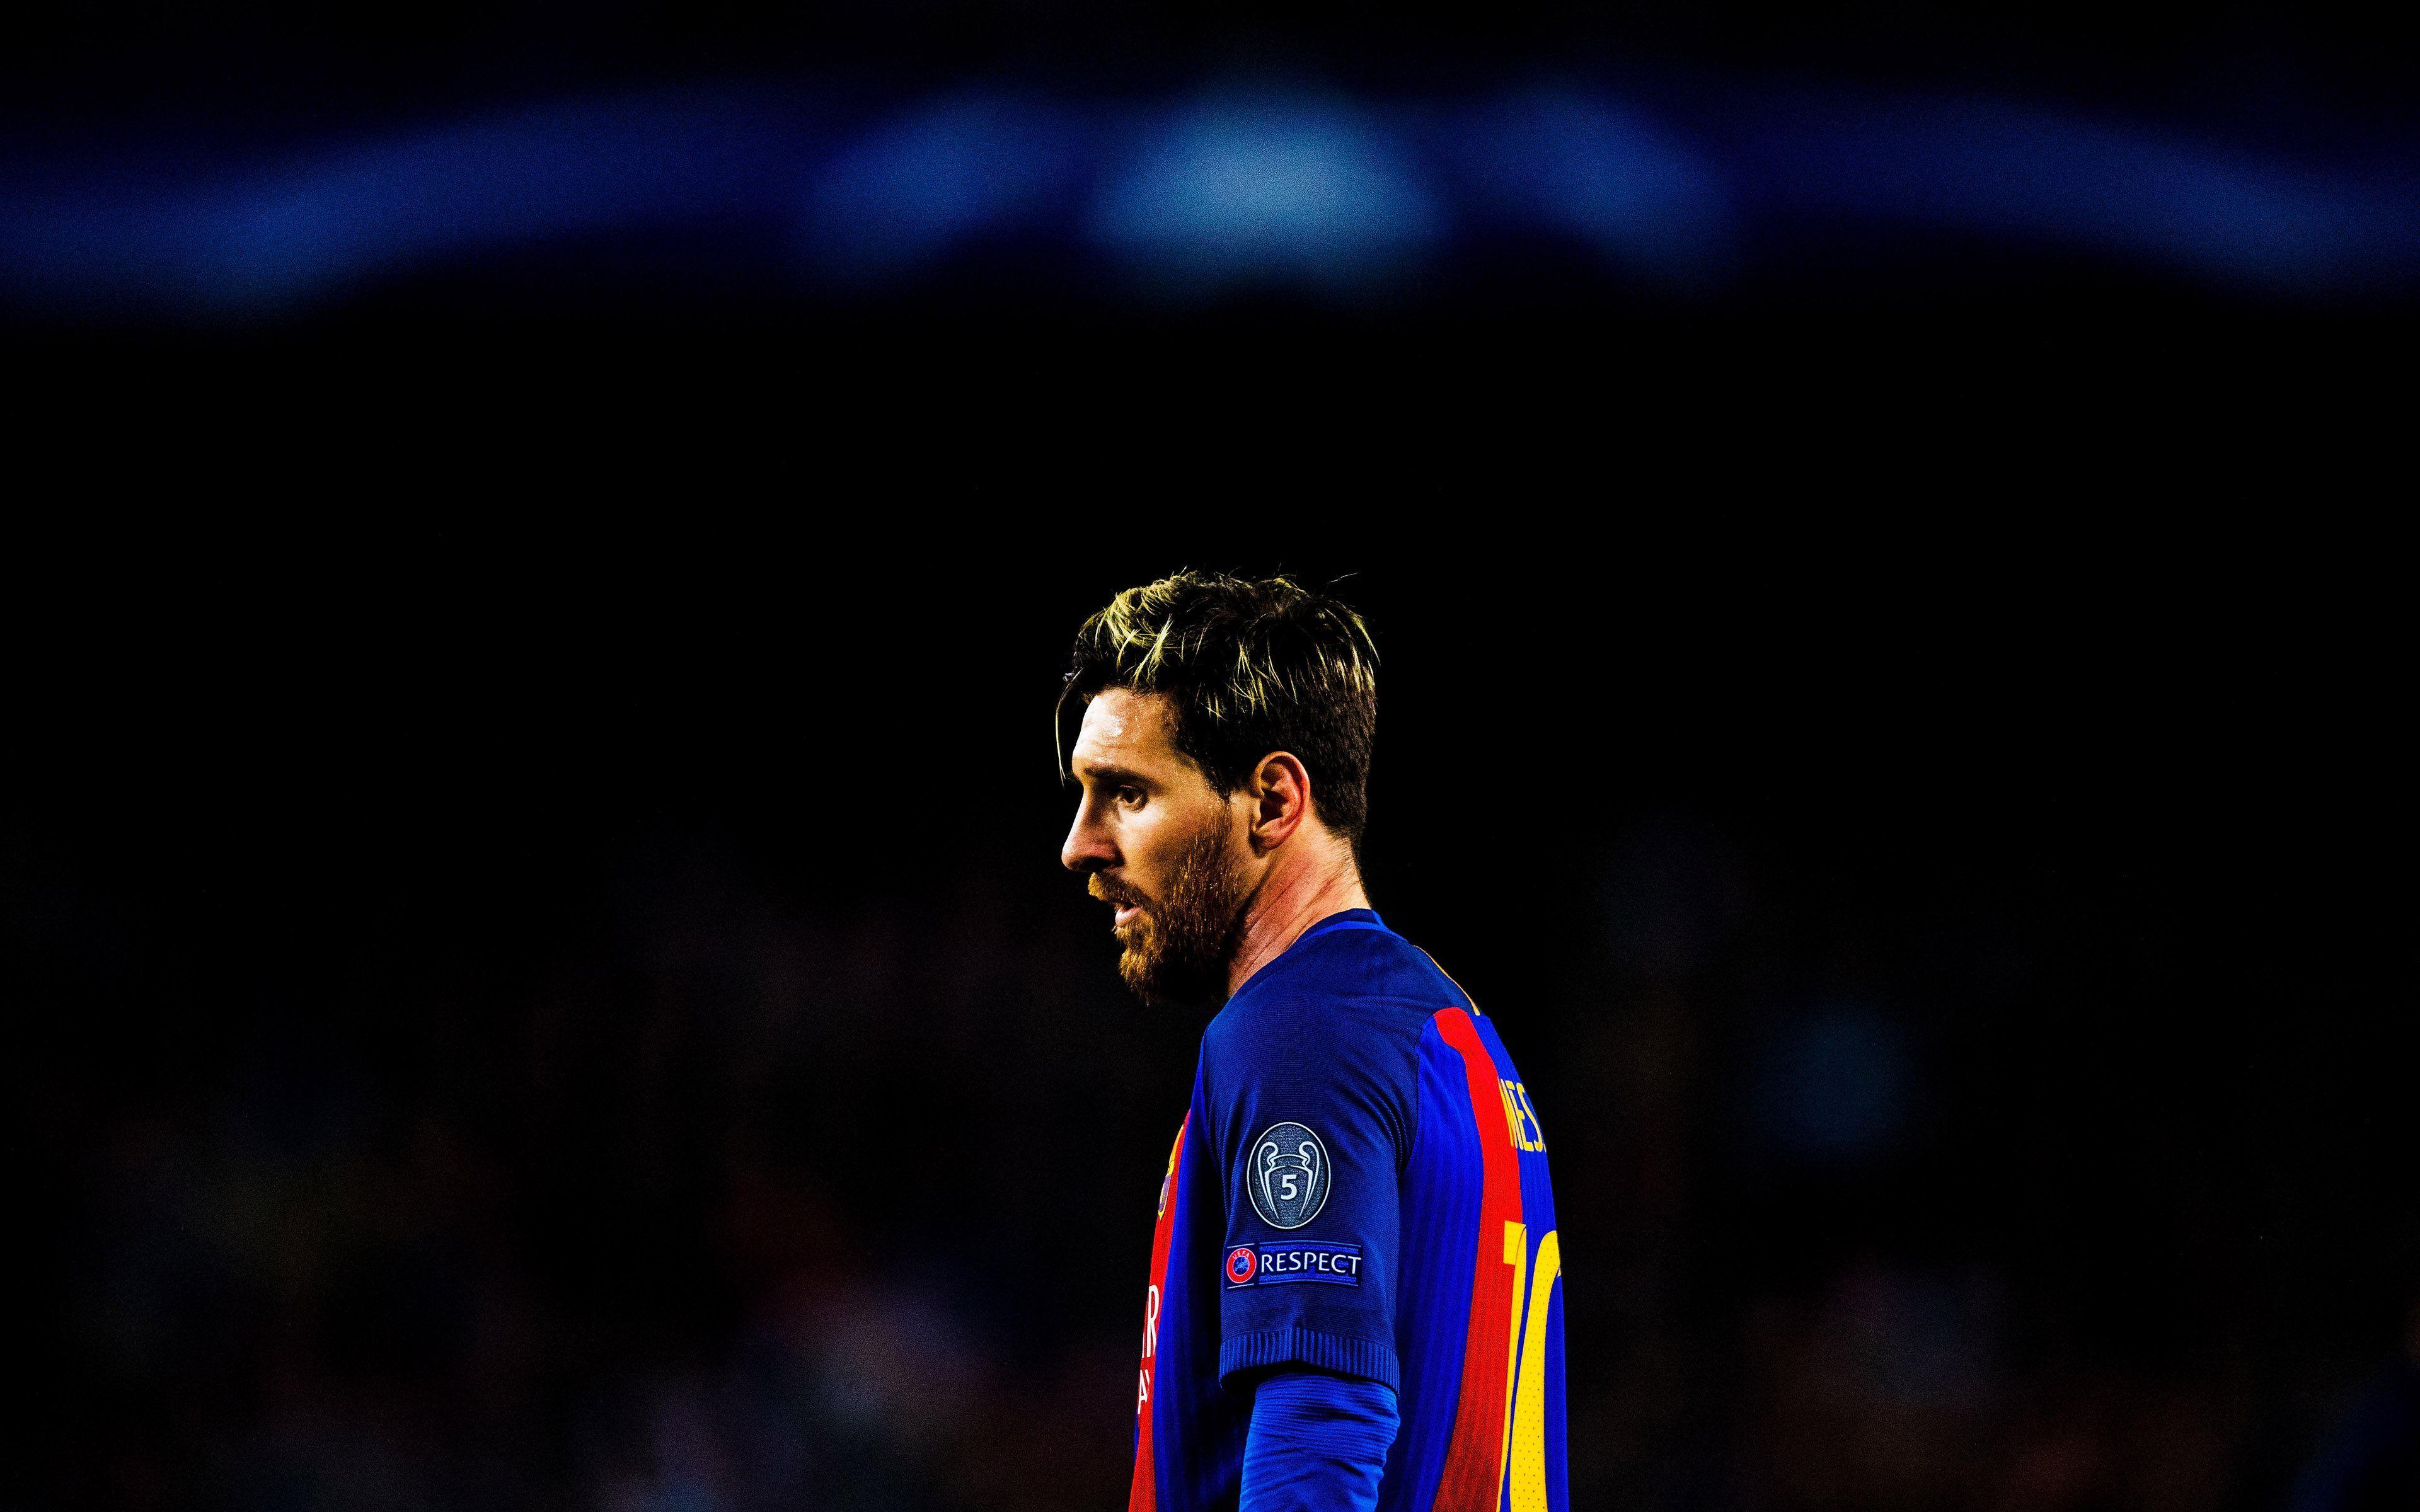 Download wallpapers Lionel Messi, 4k, match, football stars